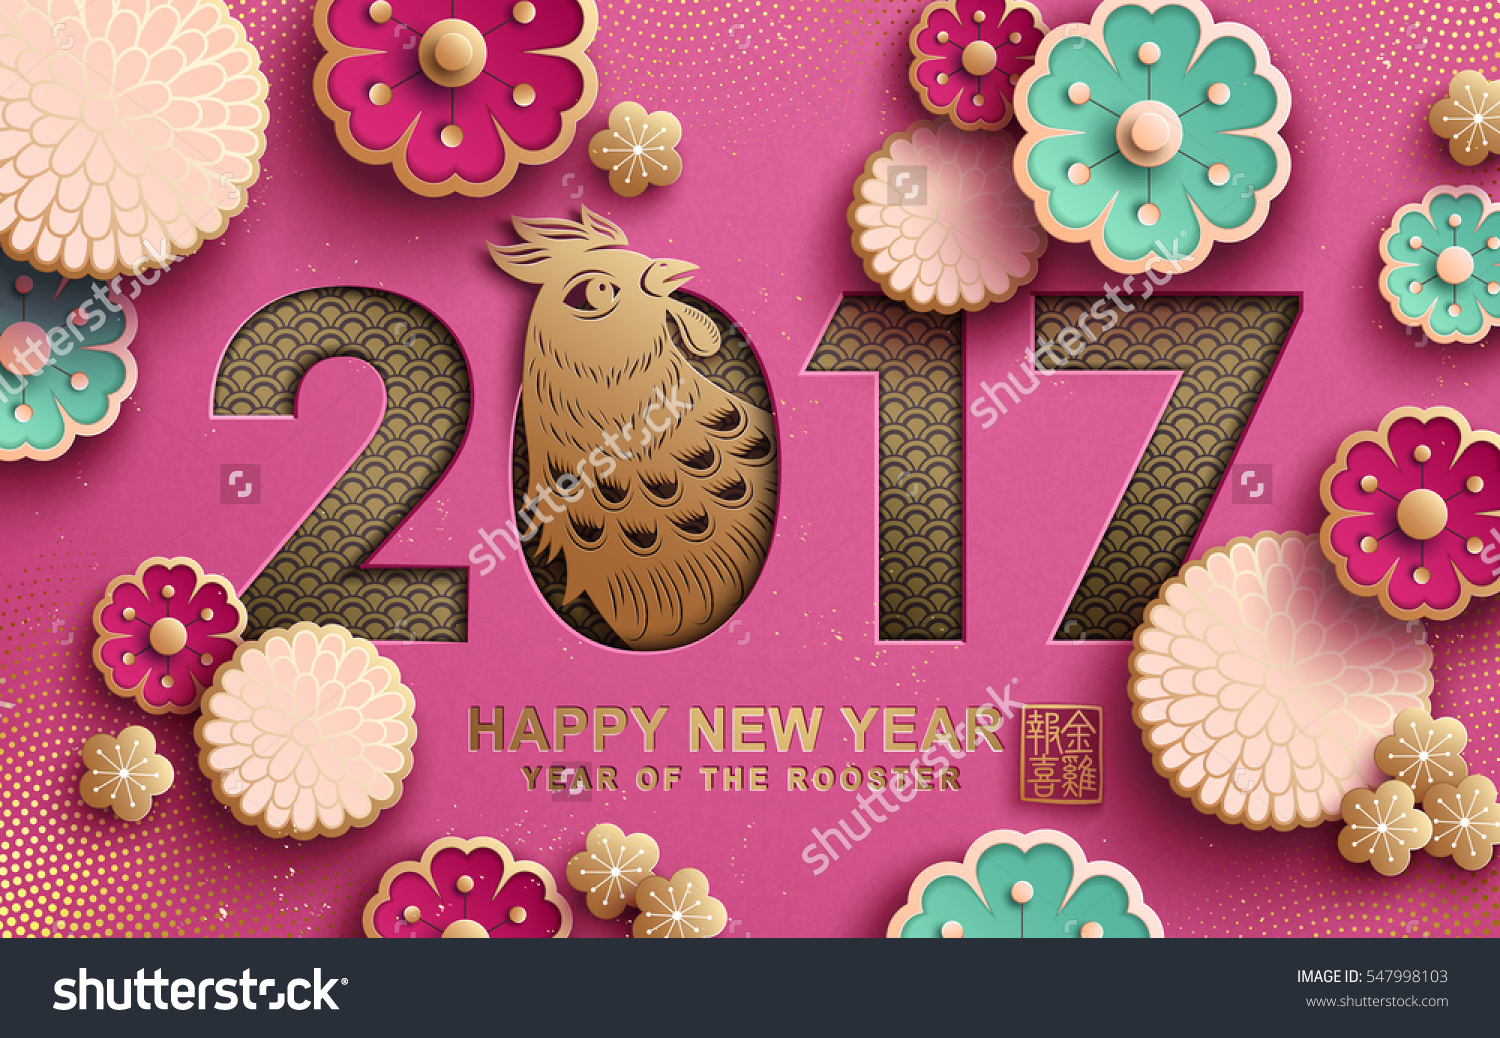 2017 Happy New Year with chicken picture, flower elements, and  happy new year of rooster in english and chinese words with pink background #547998103